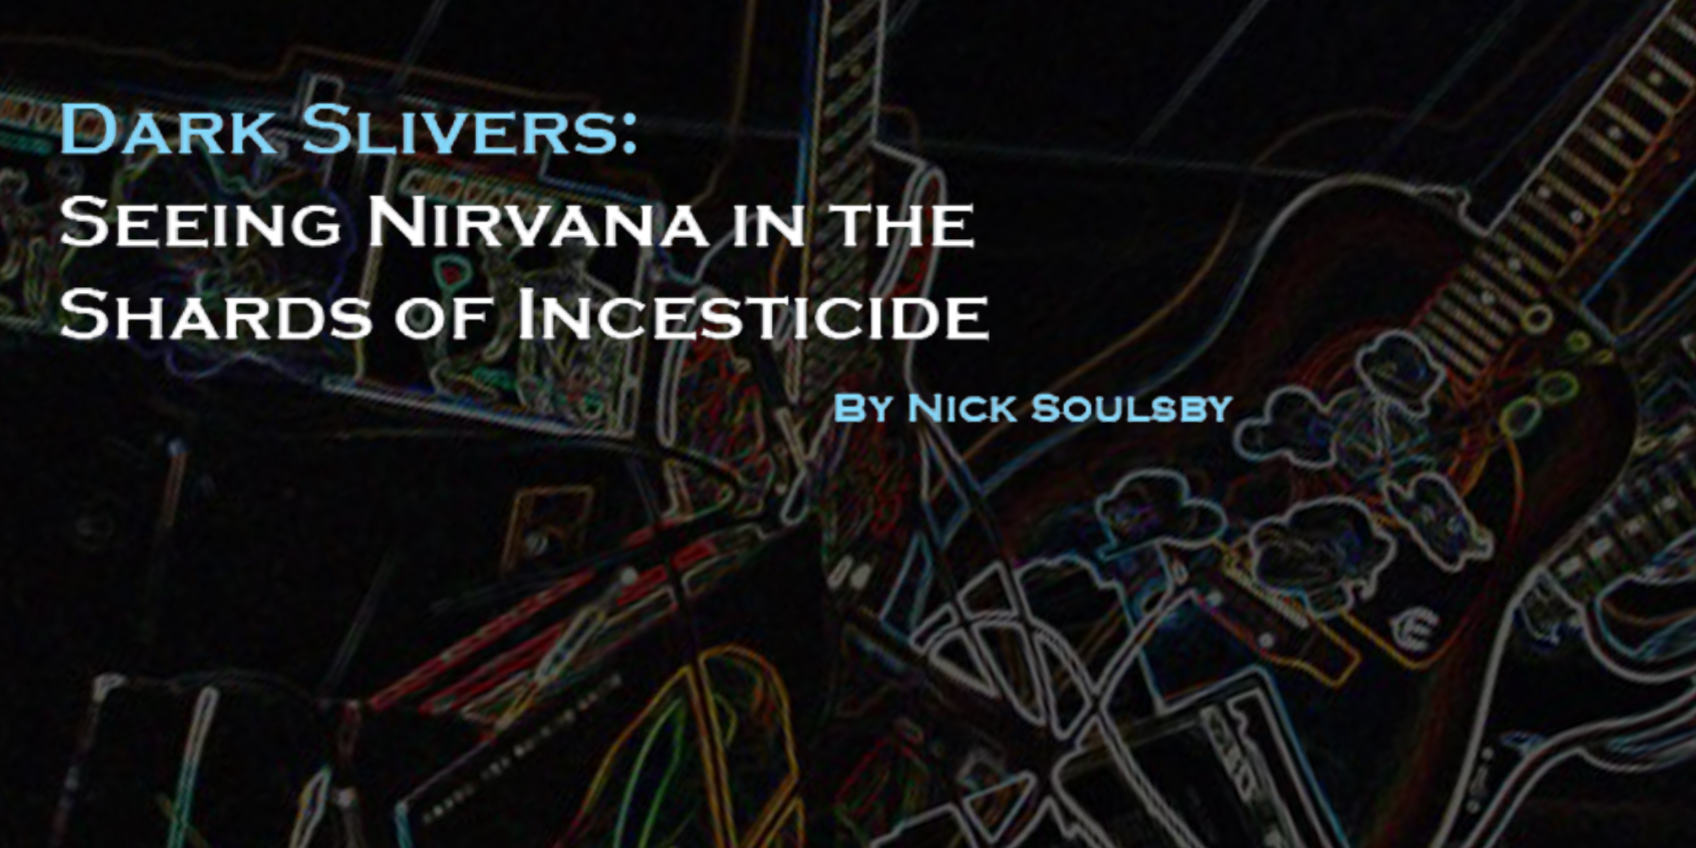 Dark Slivers: Seeing Nirvana in the Shards of Incesticide